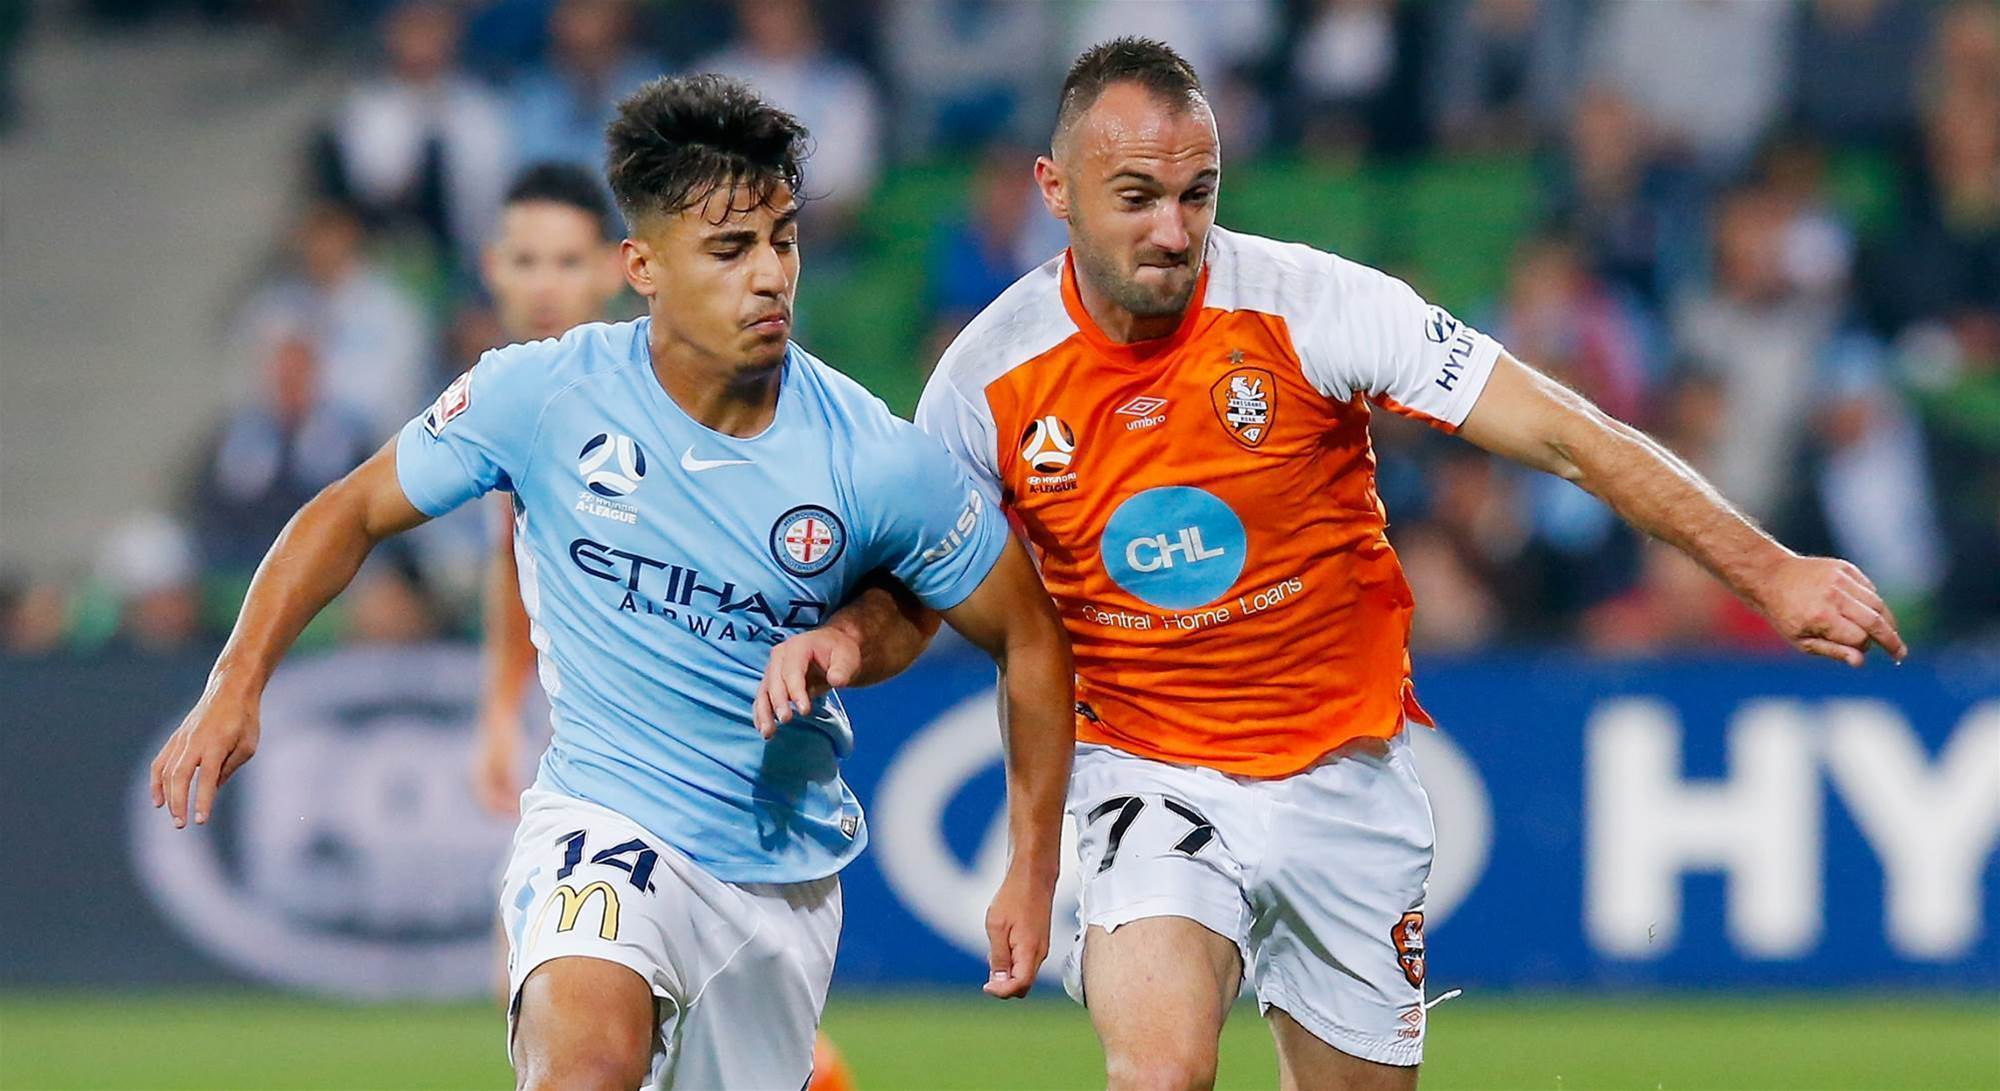 Perth Glory signs former Socceroo Franjic